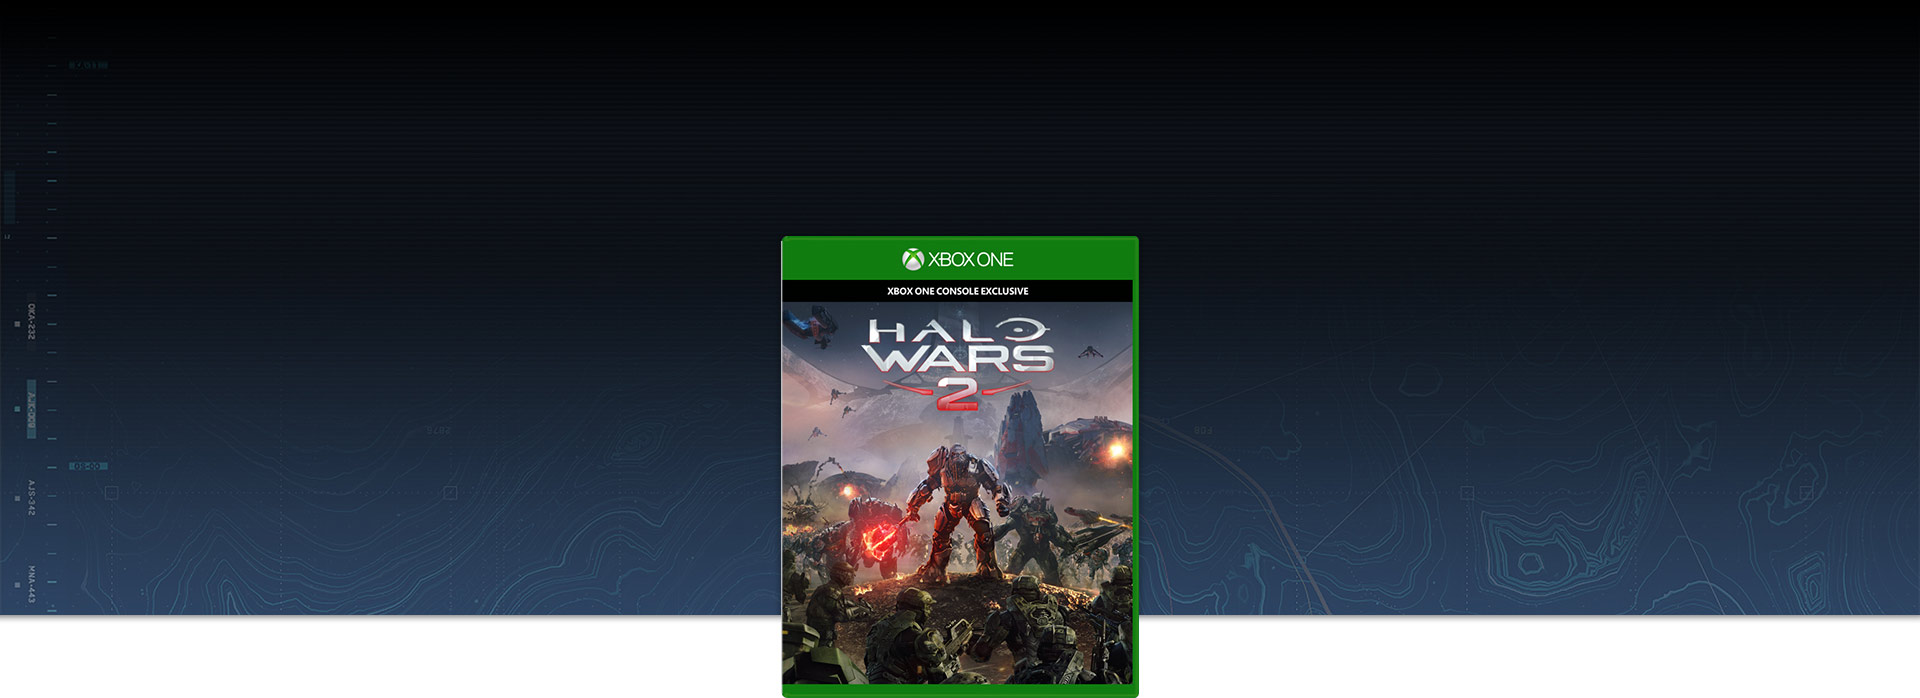 Halo Wars 2 Boxshot